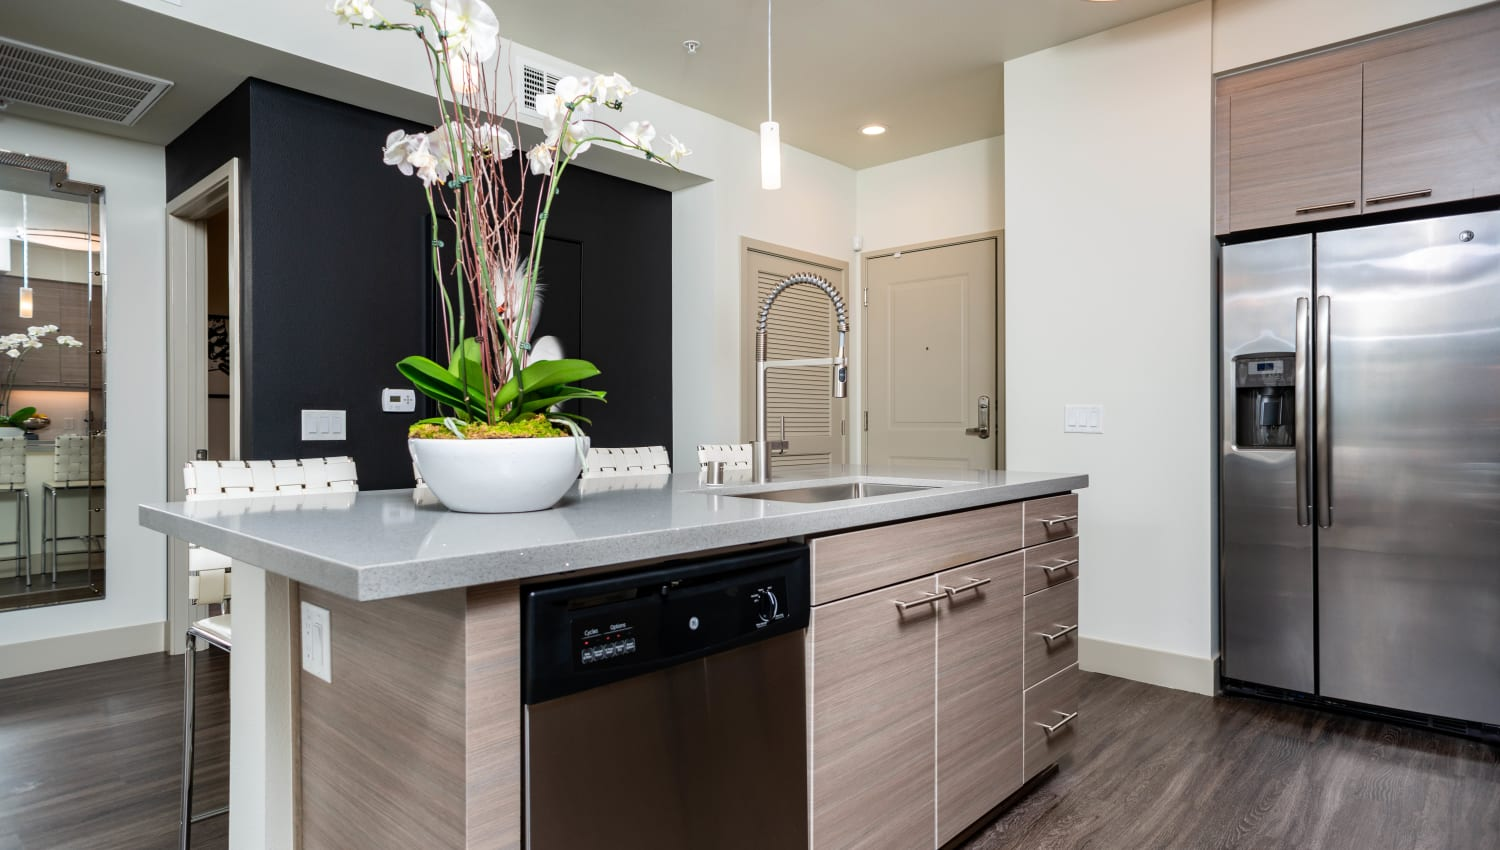 Gourmet kitchen with an island in a model apartment at Fusion Apartments in Irvine, California